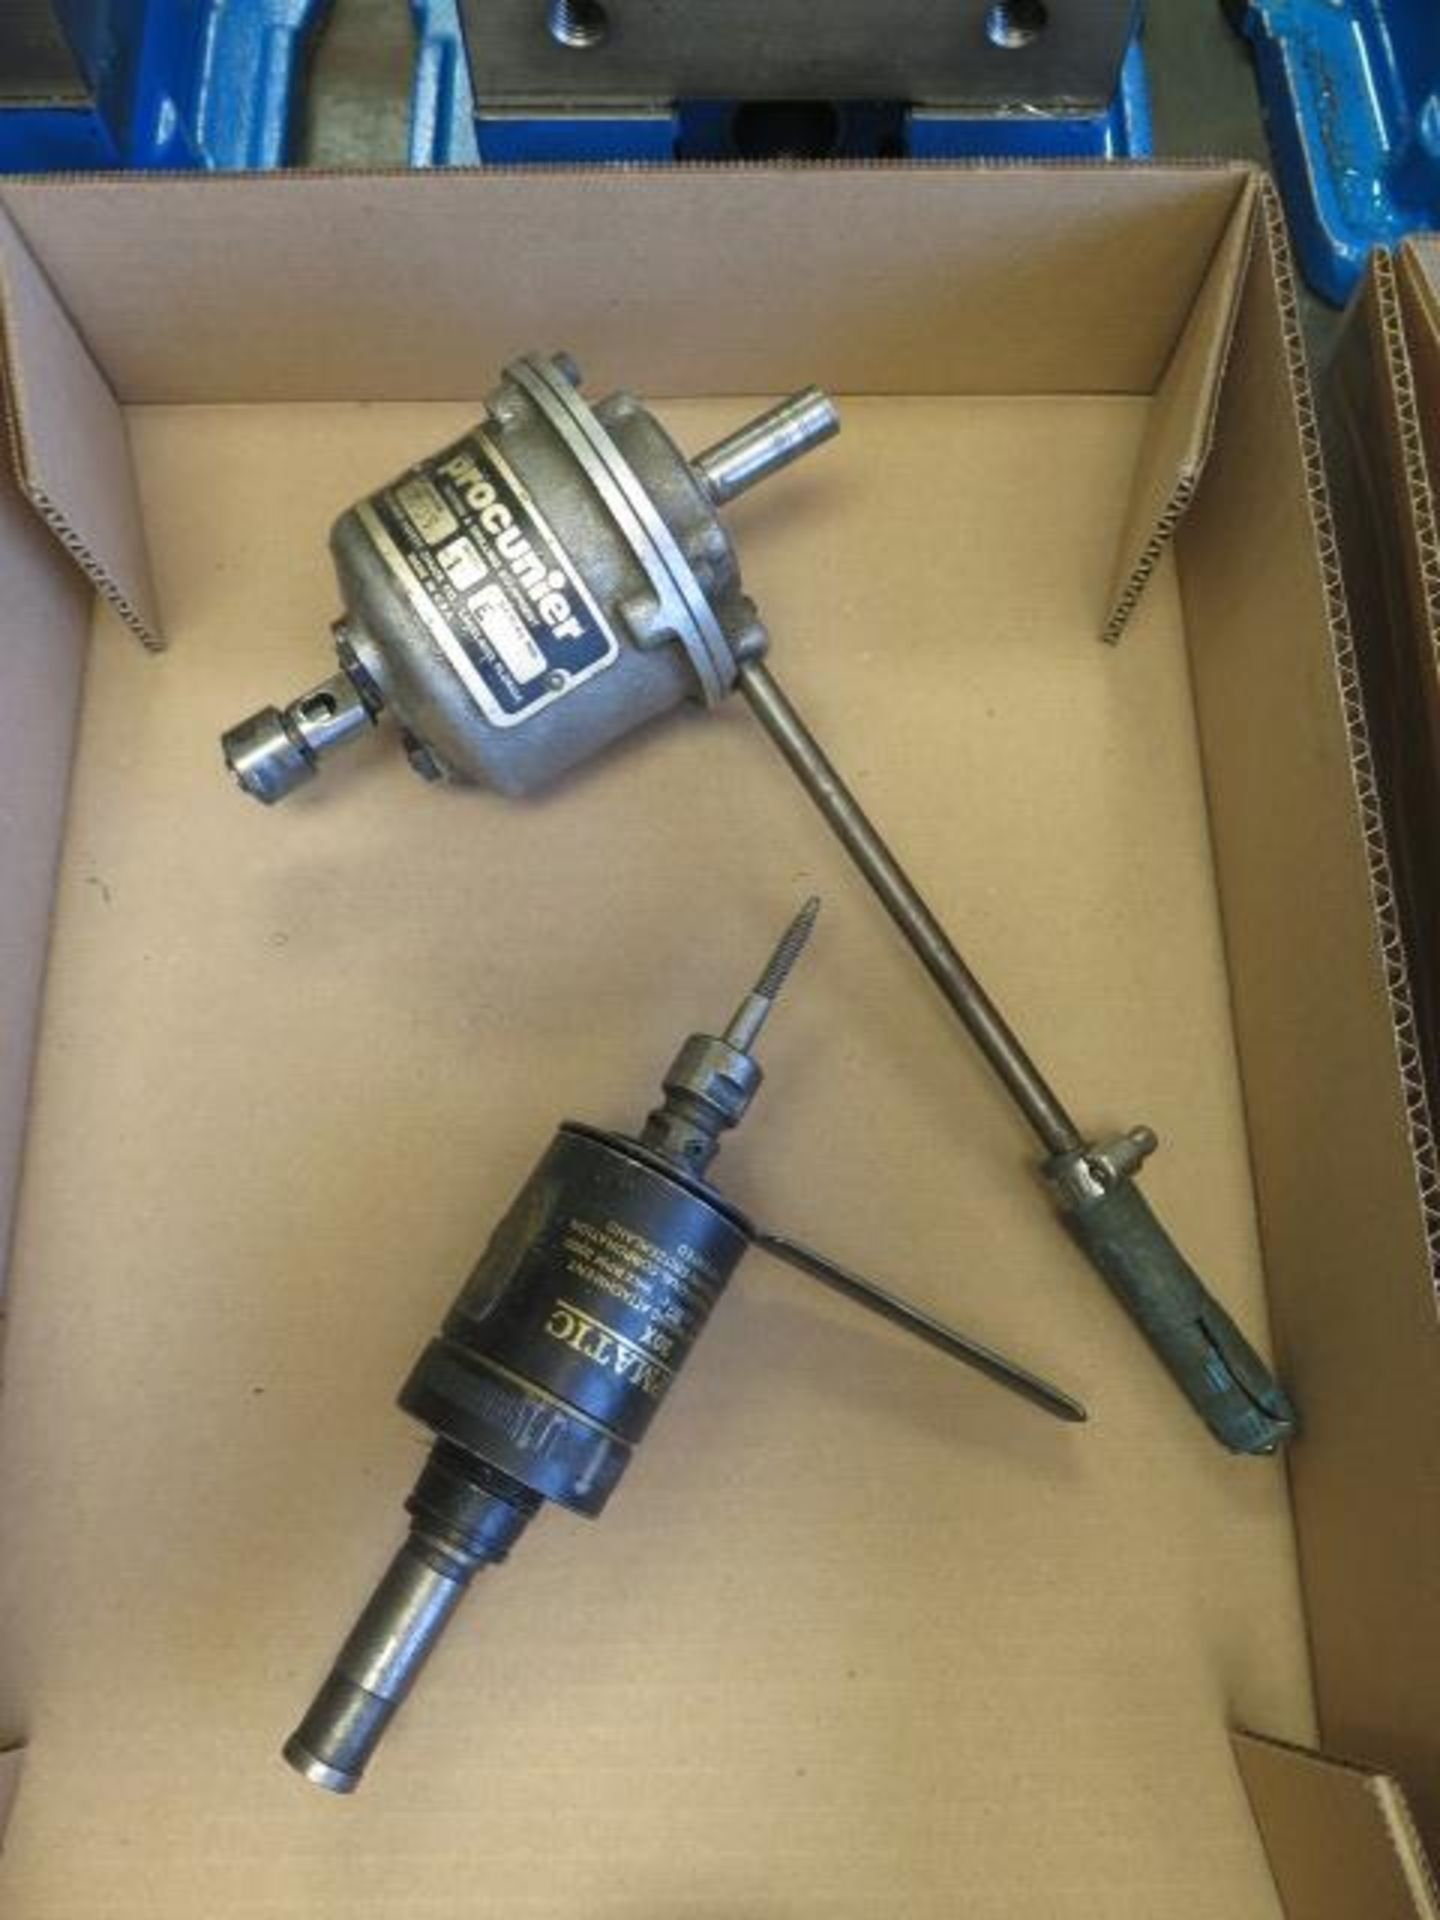 Tapmatic and Procunier Tapping Heads (2) (SOLD AS-IS - NO WARRANTY) - Image 2 of 4